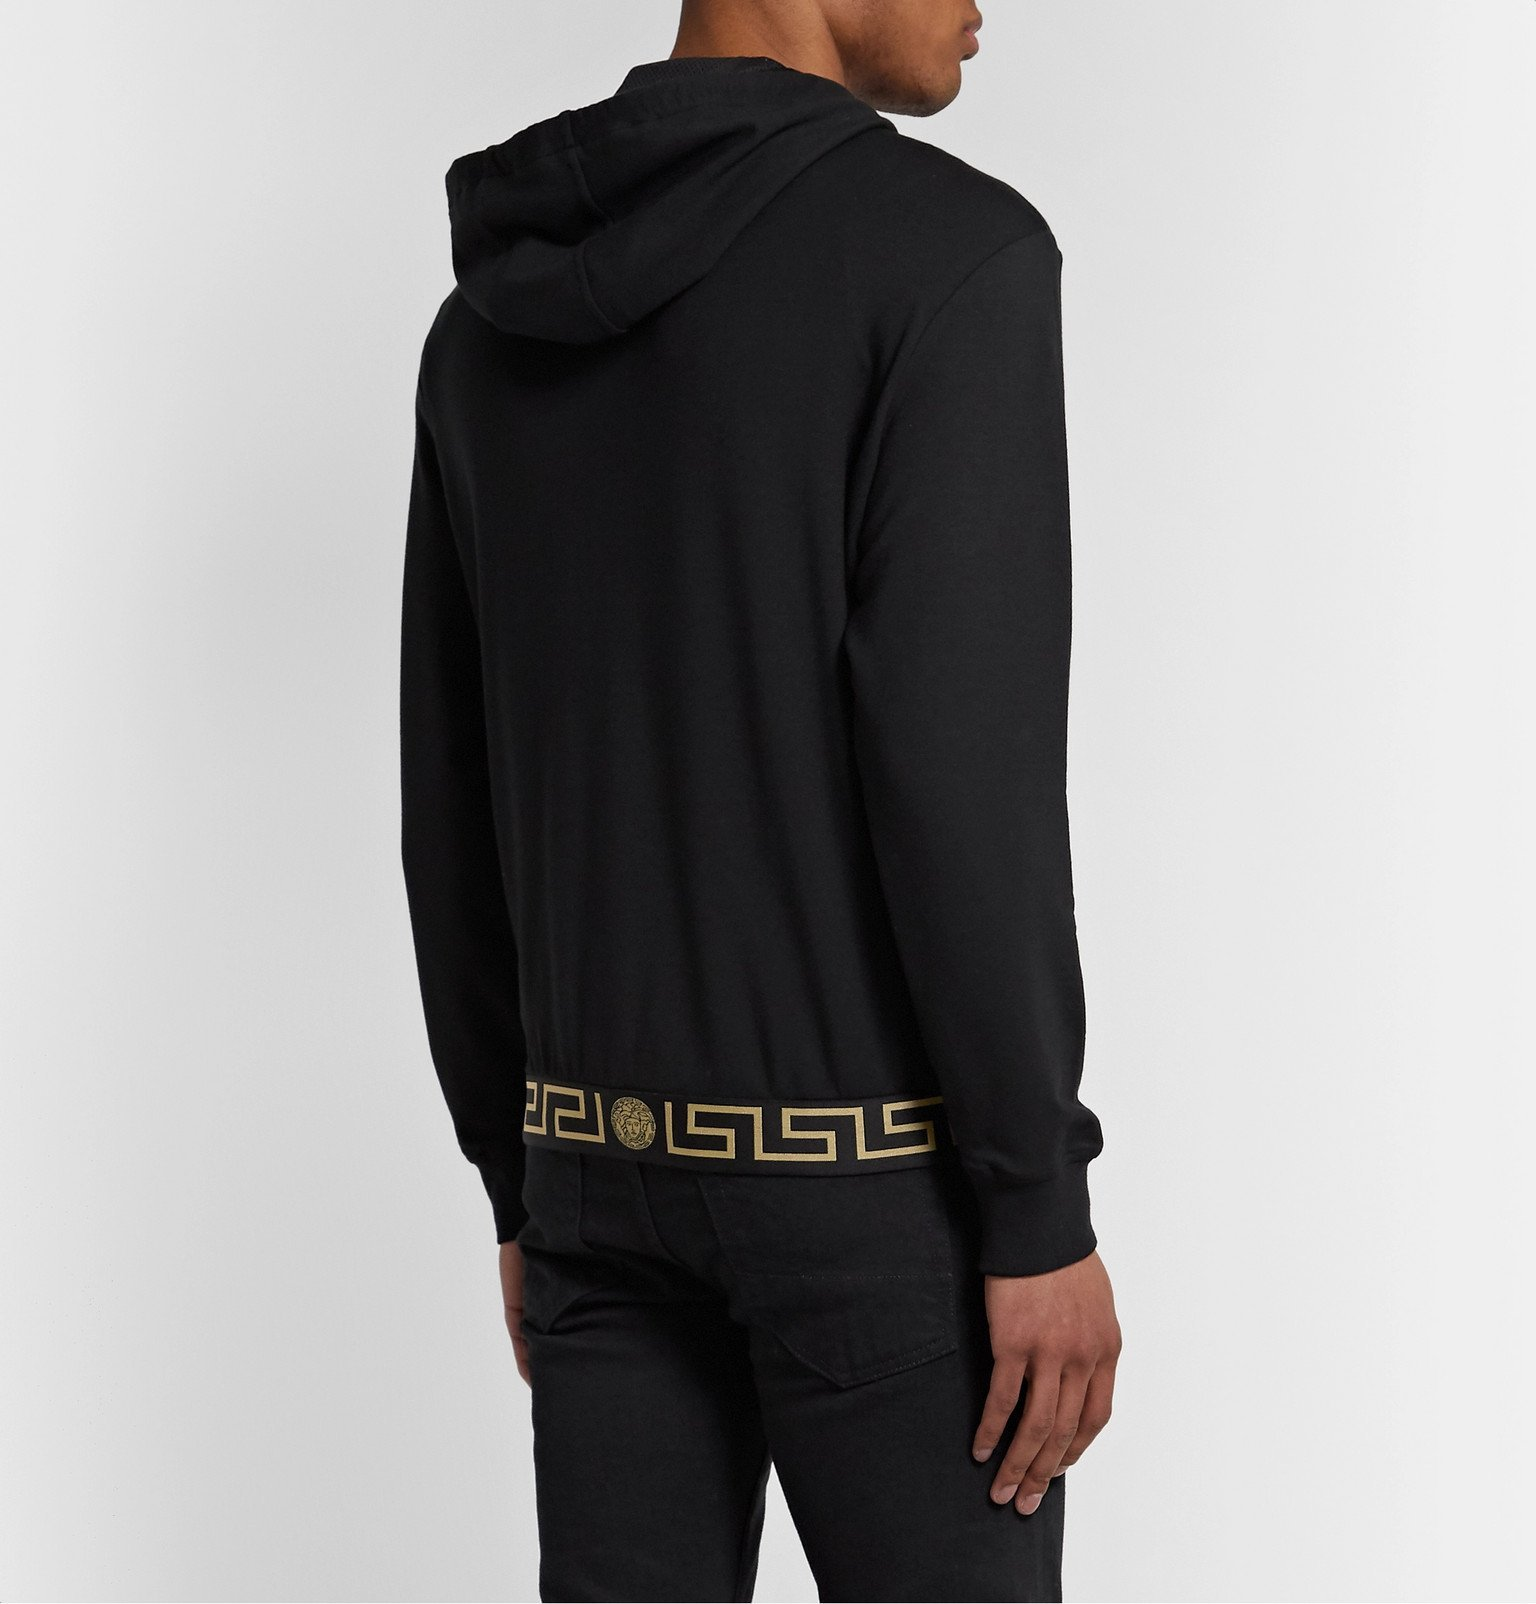 Versace - Logo-Jacquard Stretch-Modal Jersey Zip-Up Hoodie - Black